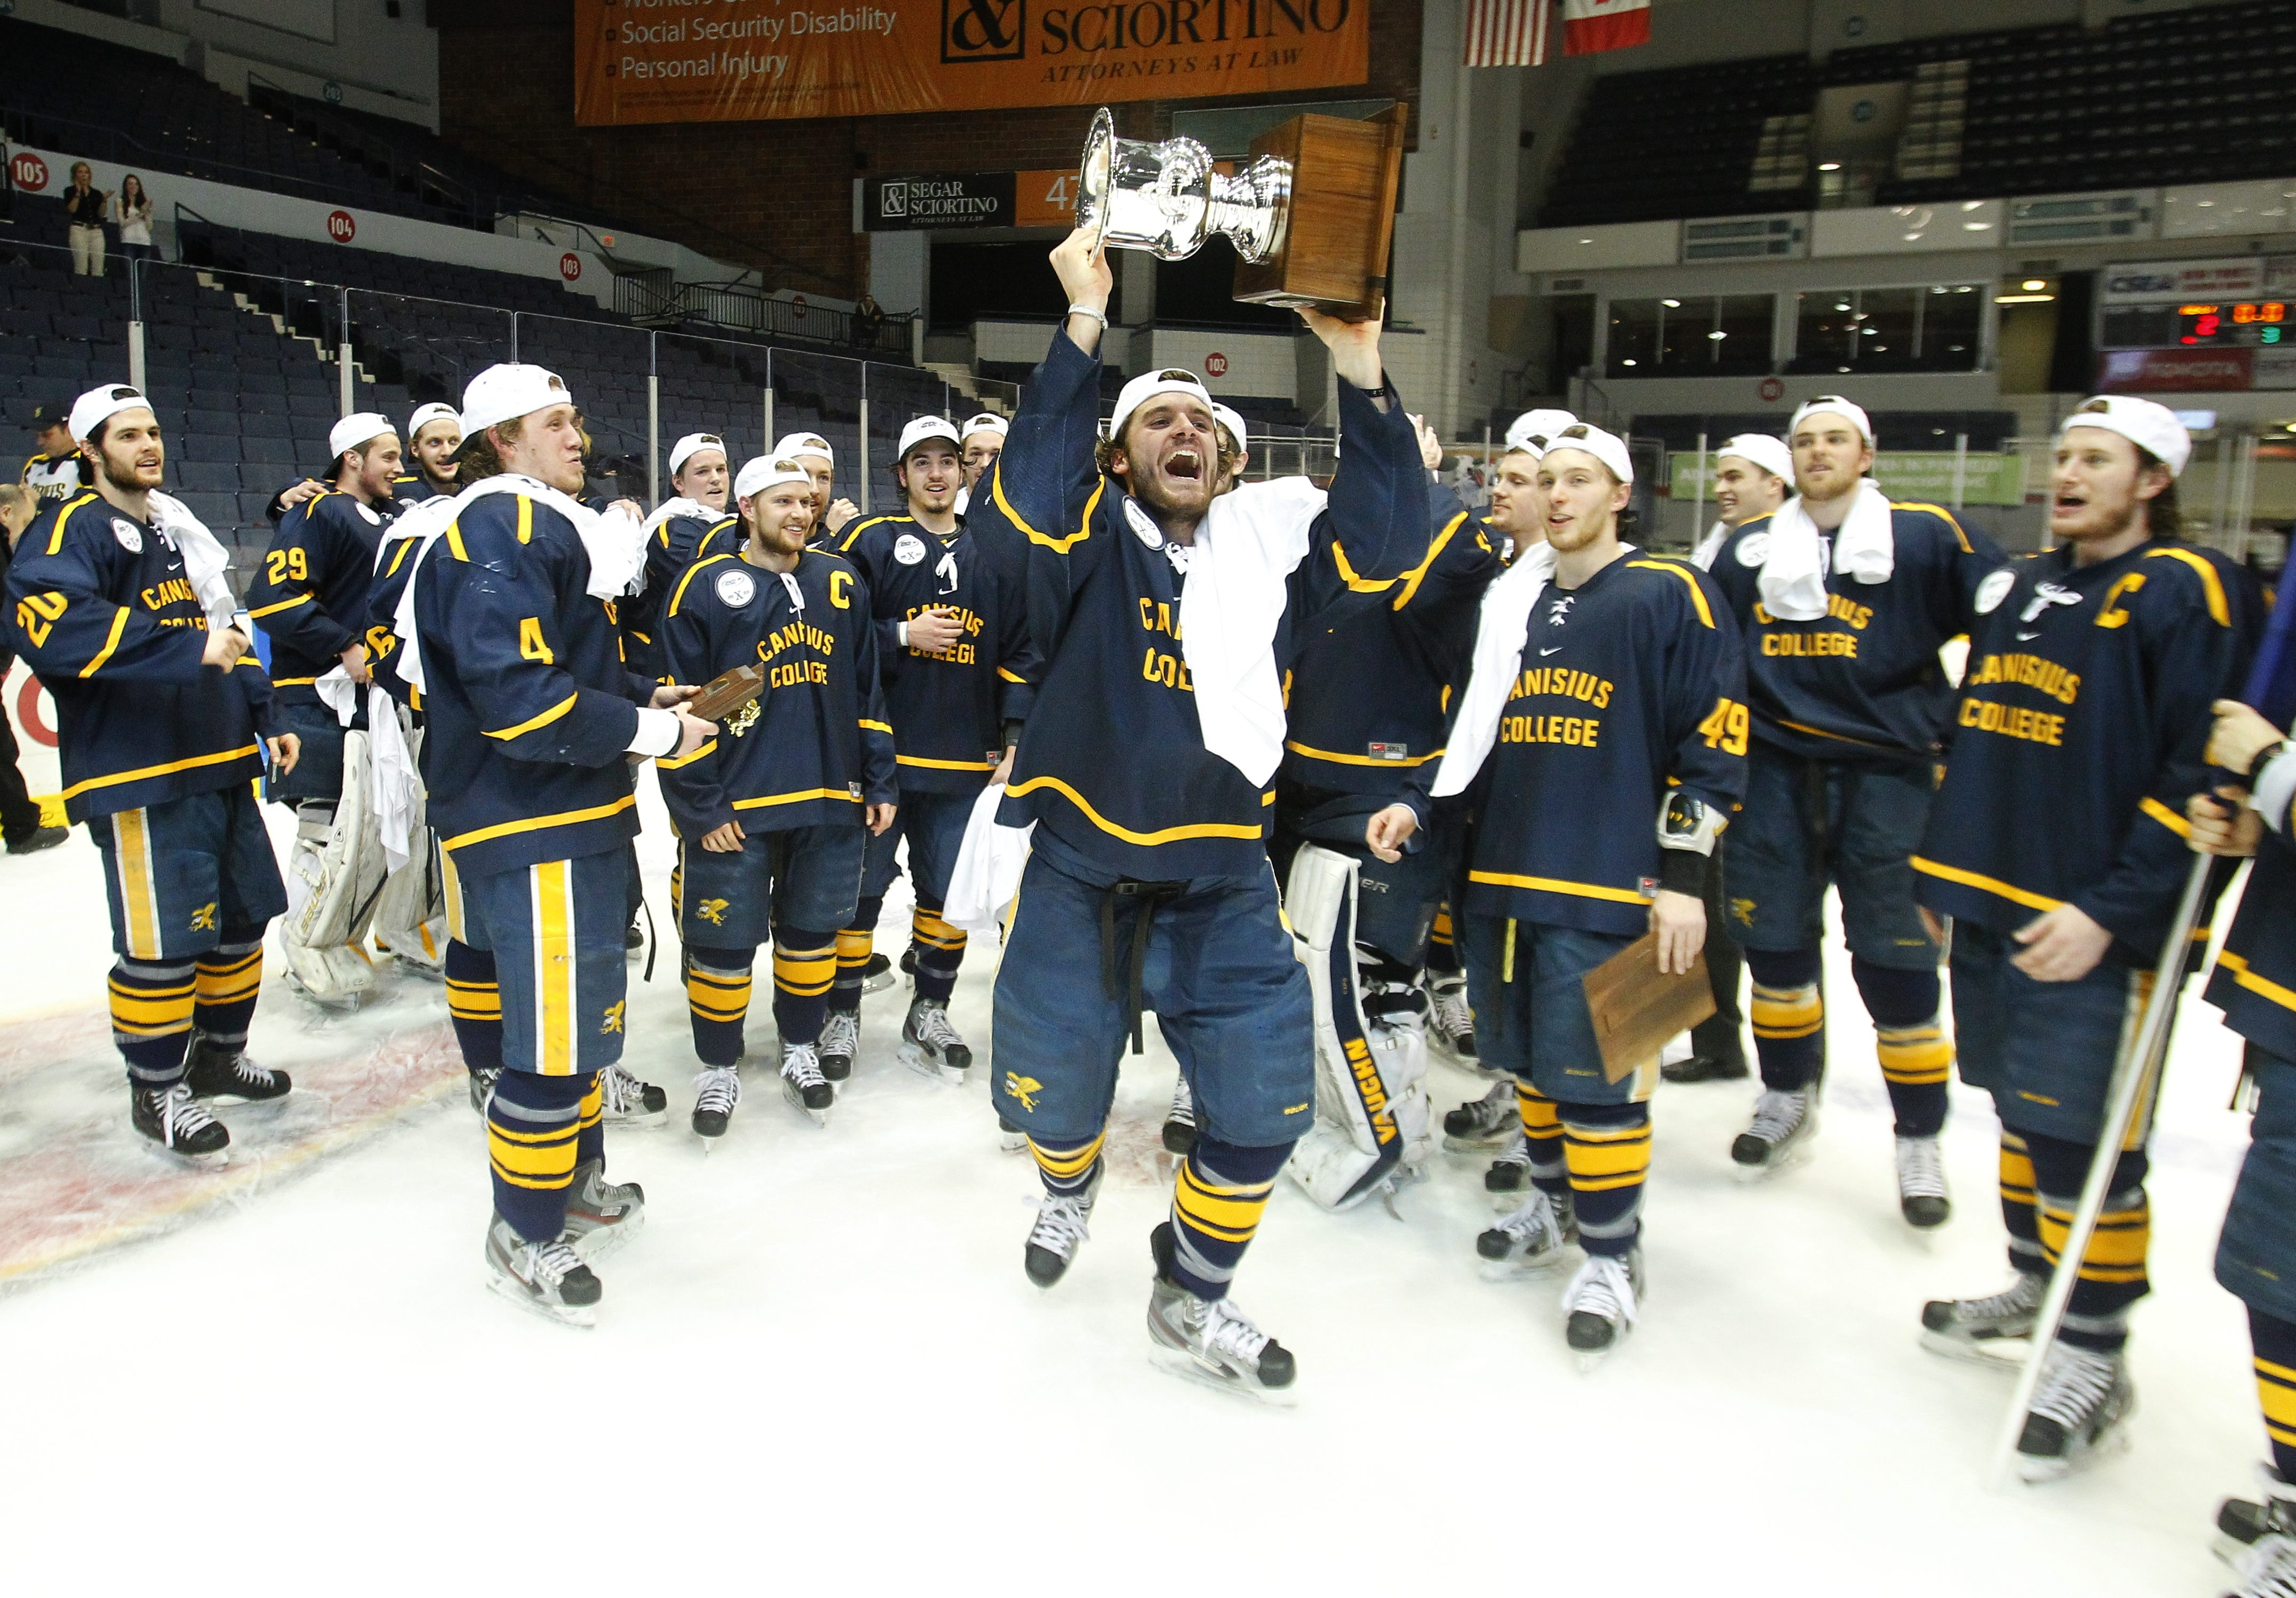 Kyle Gibbons and his Canisius teammates left Blue Cross Arena in Rochester last season with the Atlantic Hockey championship trophy.